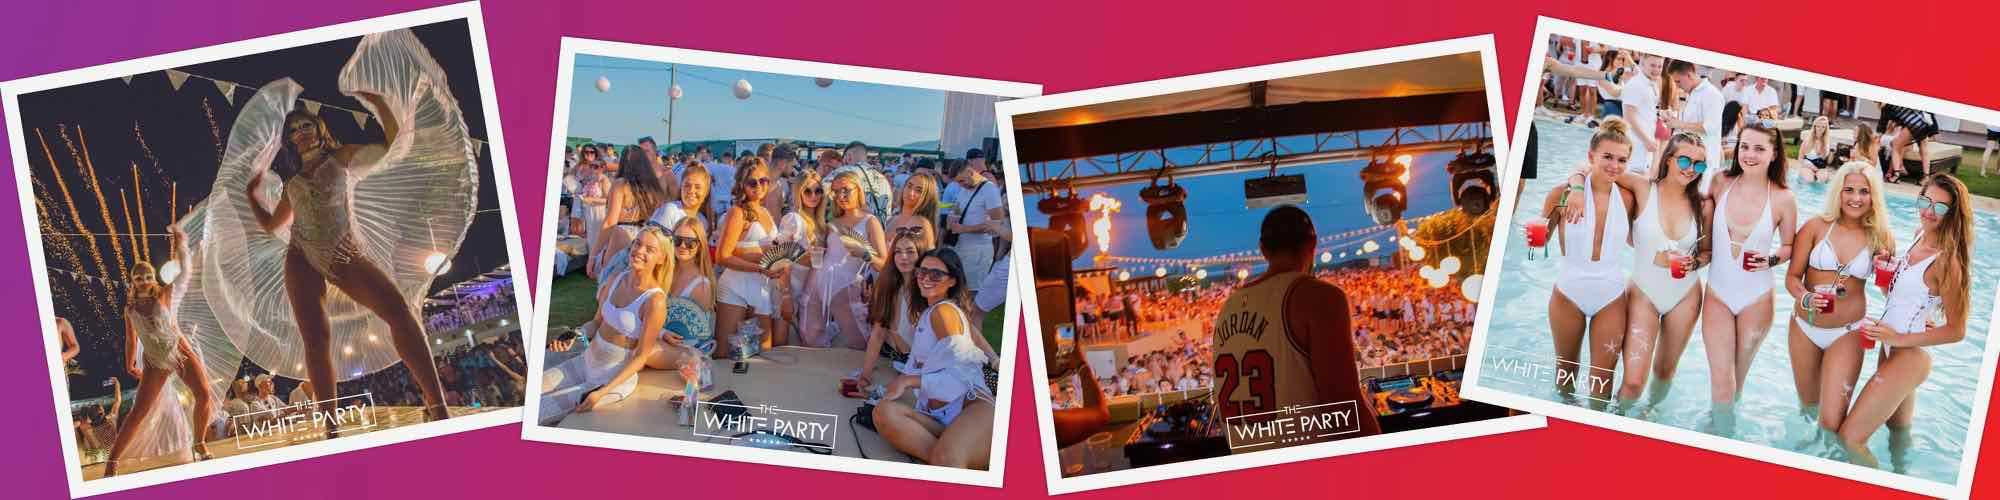 white party tickets zante